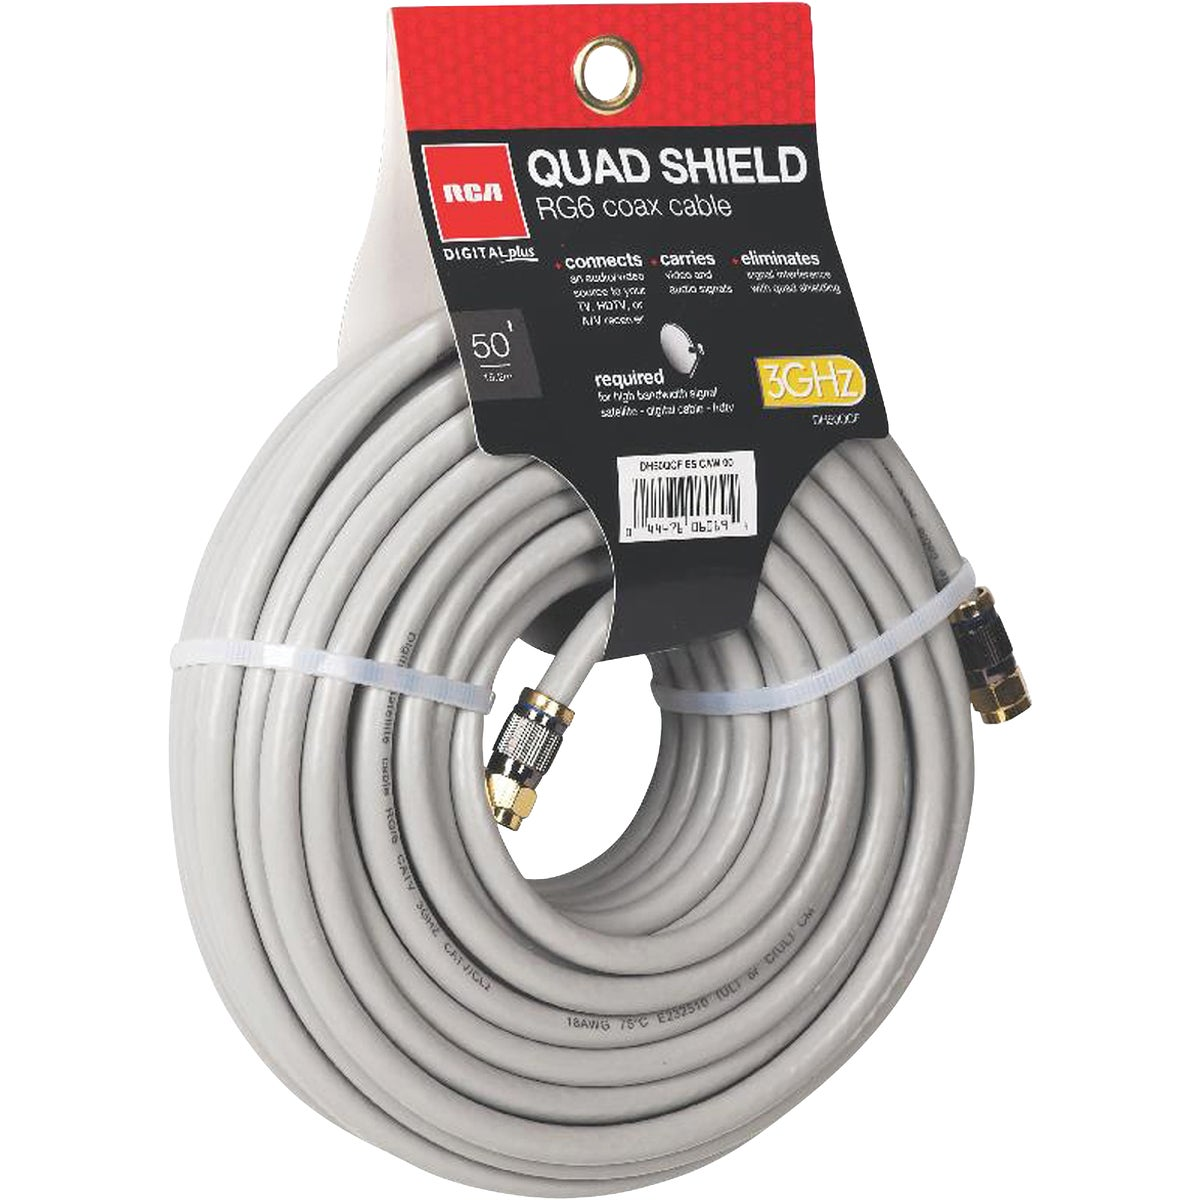 50' QUAD SHEILD CABLE